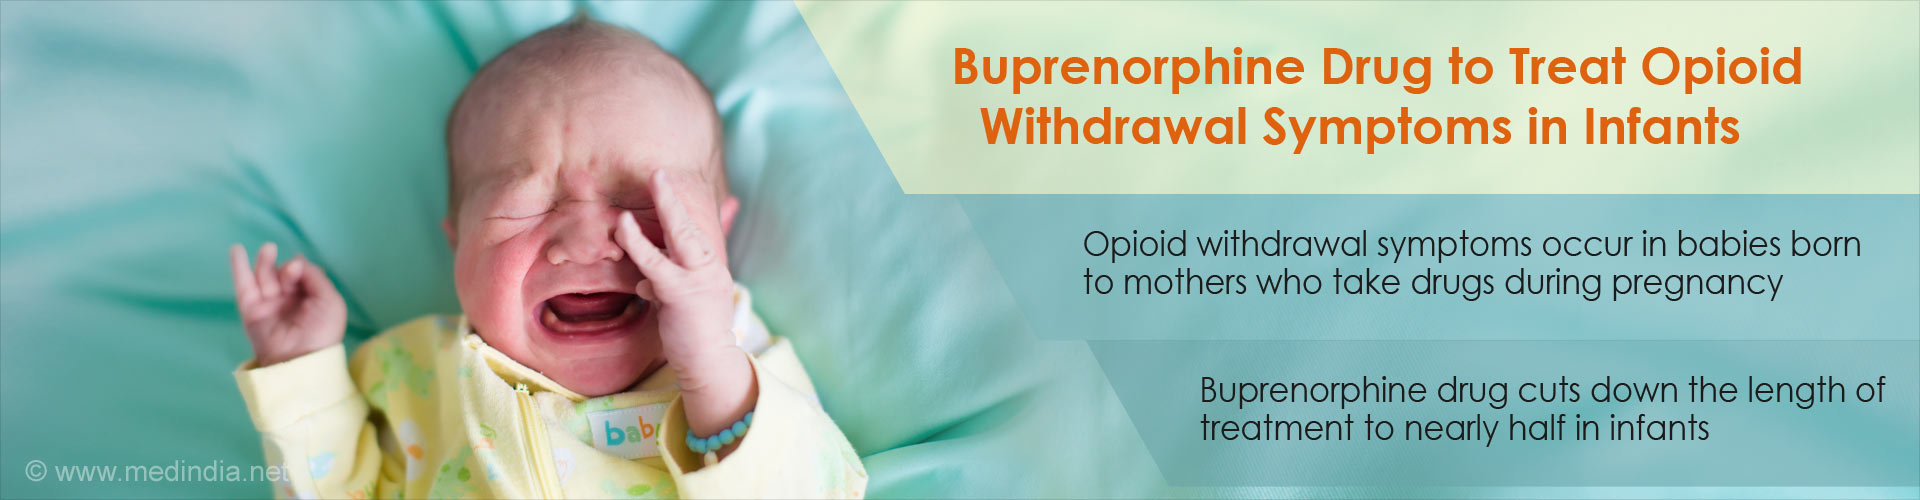 Buprenorphine Drug : Cuts Down Opioid Withdrawal Symptoms to Nearly Half in Infants